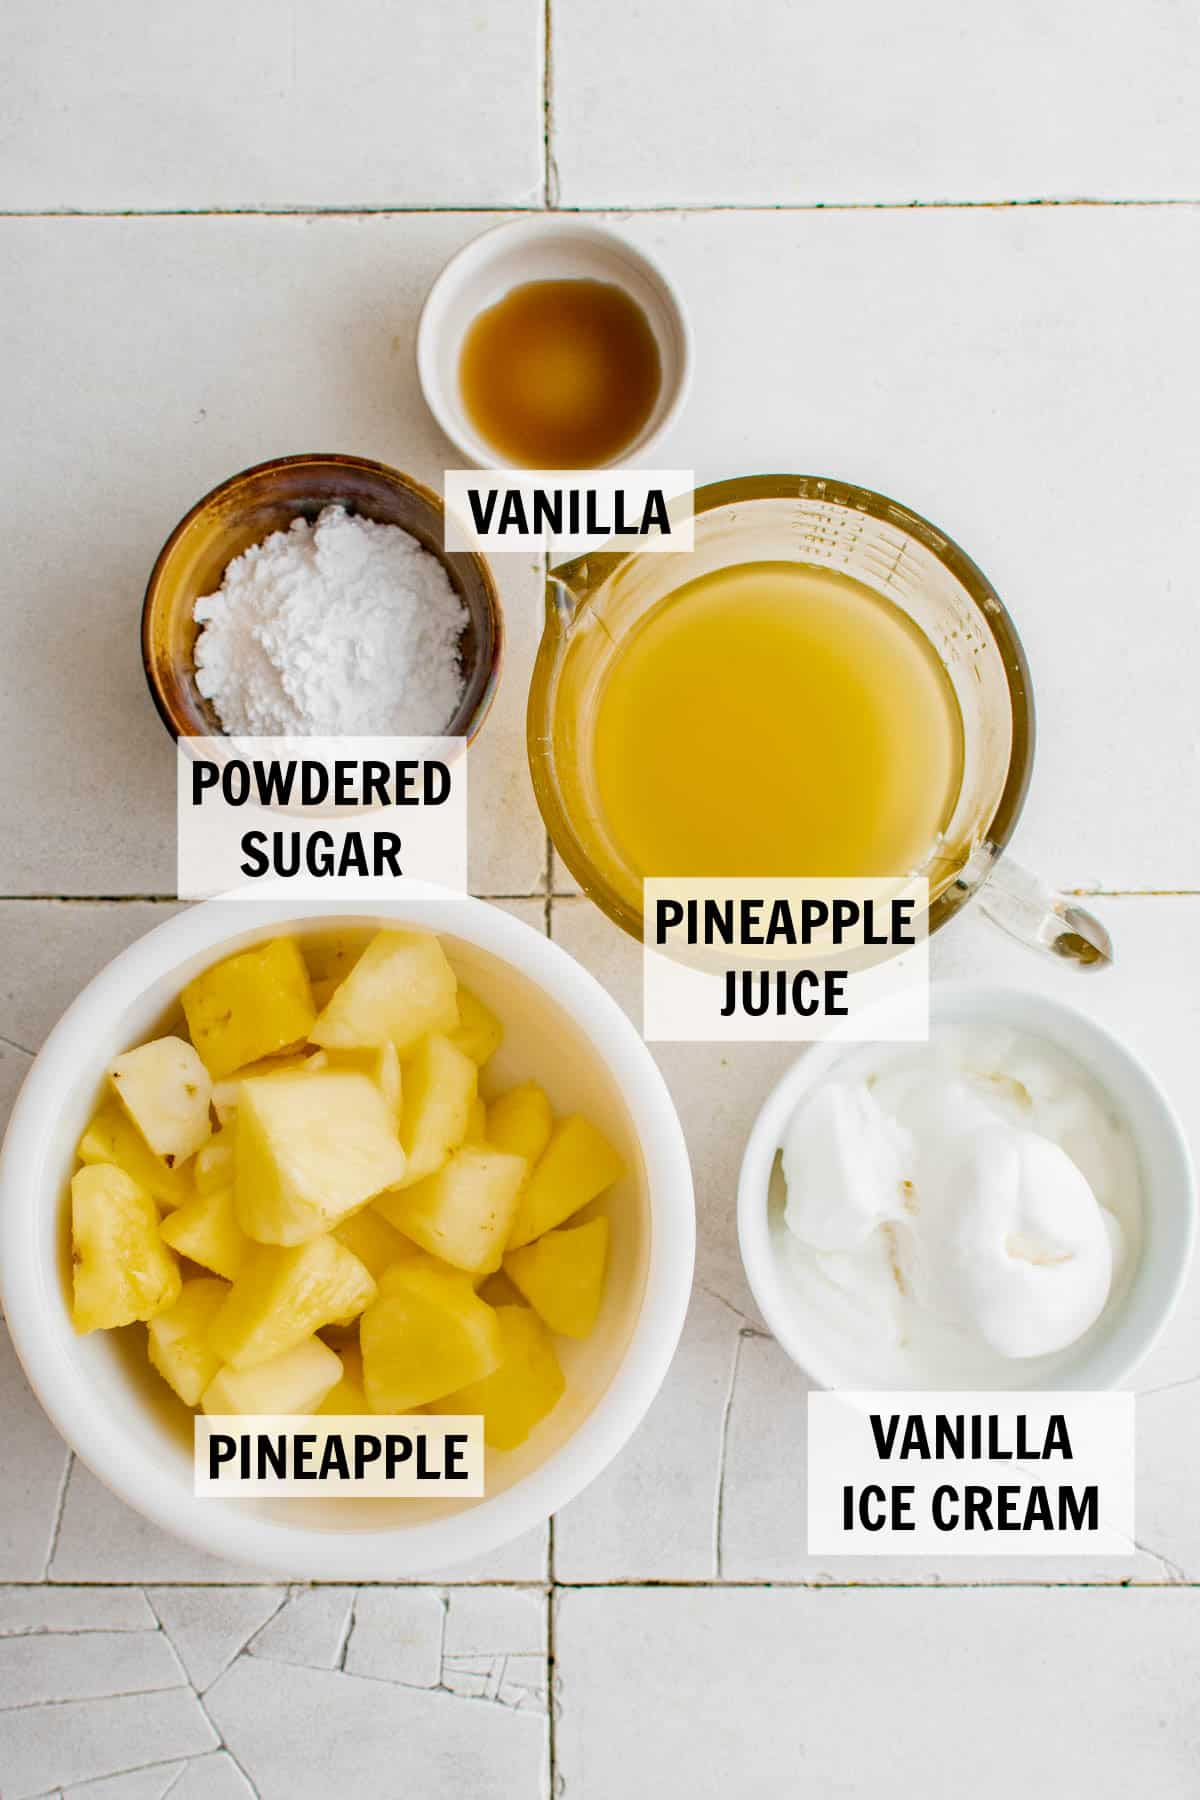 all of the ingredients for dole whip on a tabletop